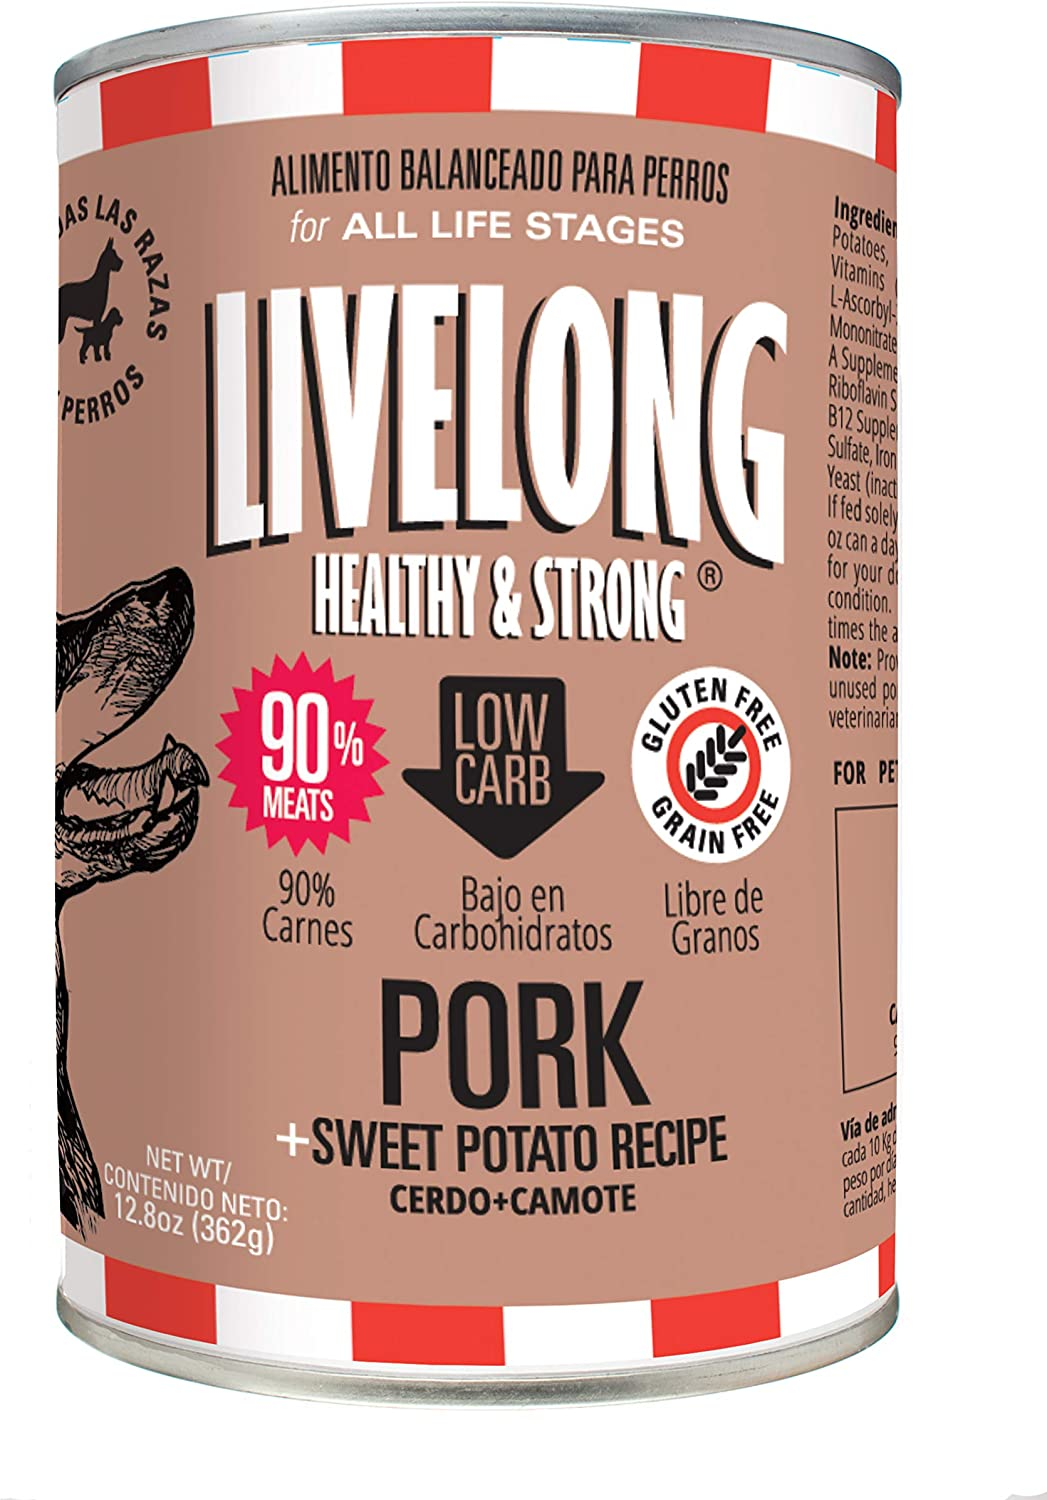 LIVELONG HEALTHY & STRONG Canned Dog Food - 12.8 oz Wet Dog Food with 90% Meat – Premium Dog Food Can with Organic Vegetables – No Grain Recipe – Pack of 12 Dog Food Cans